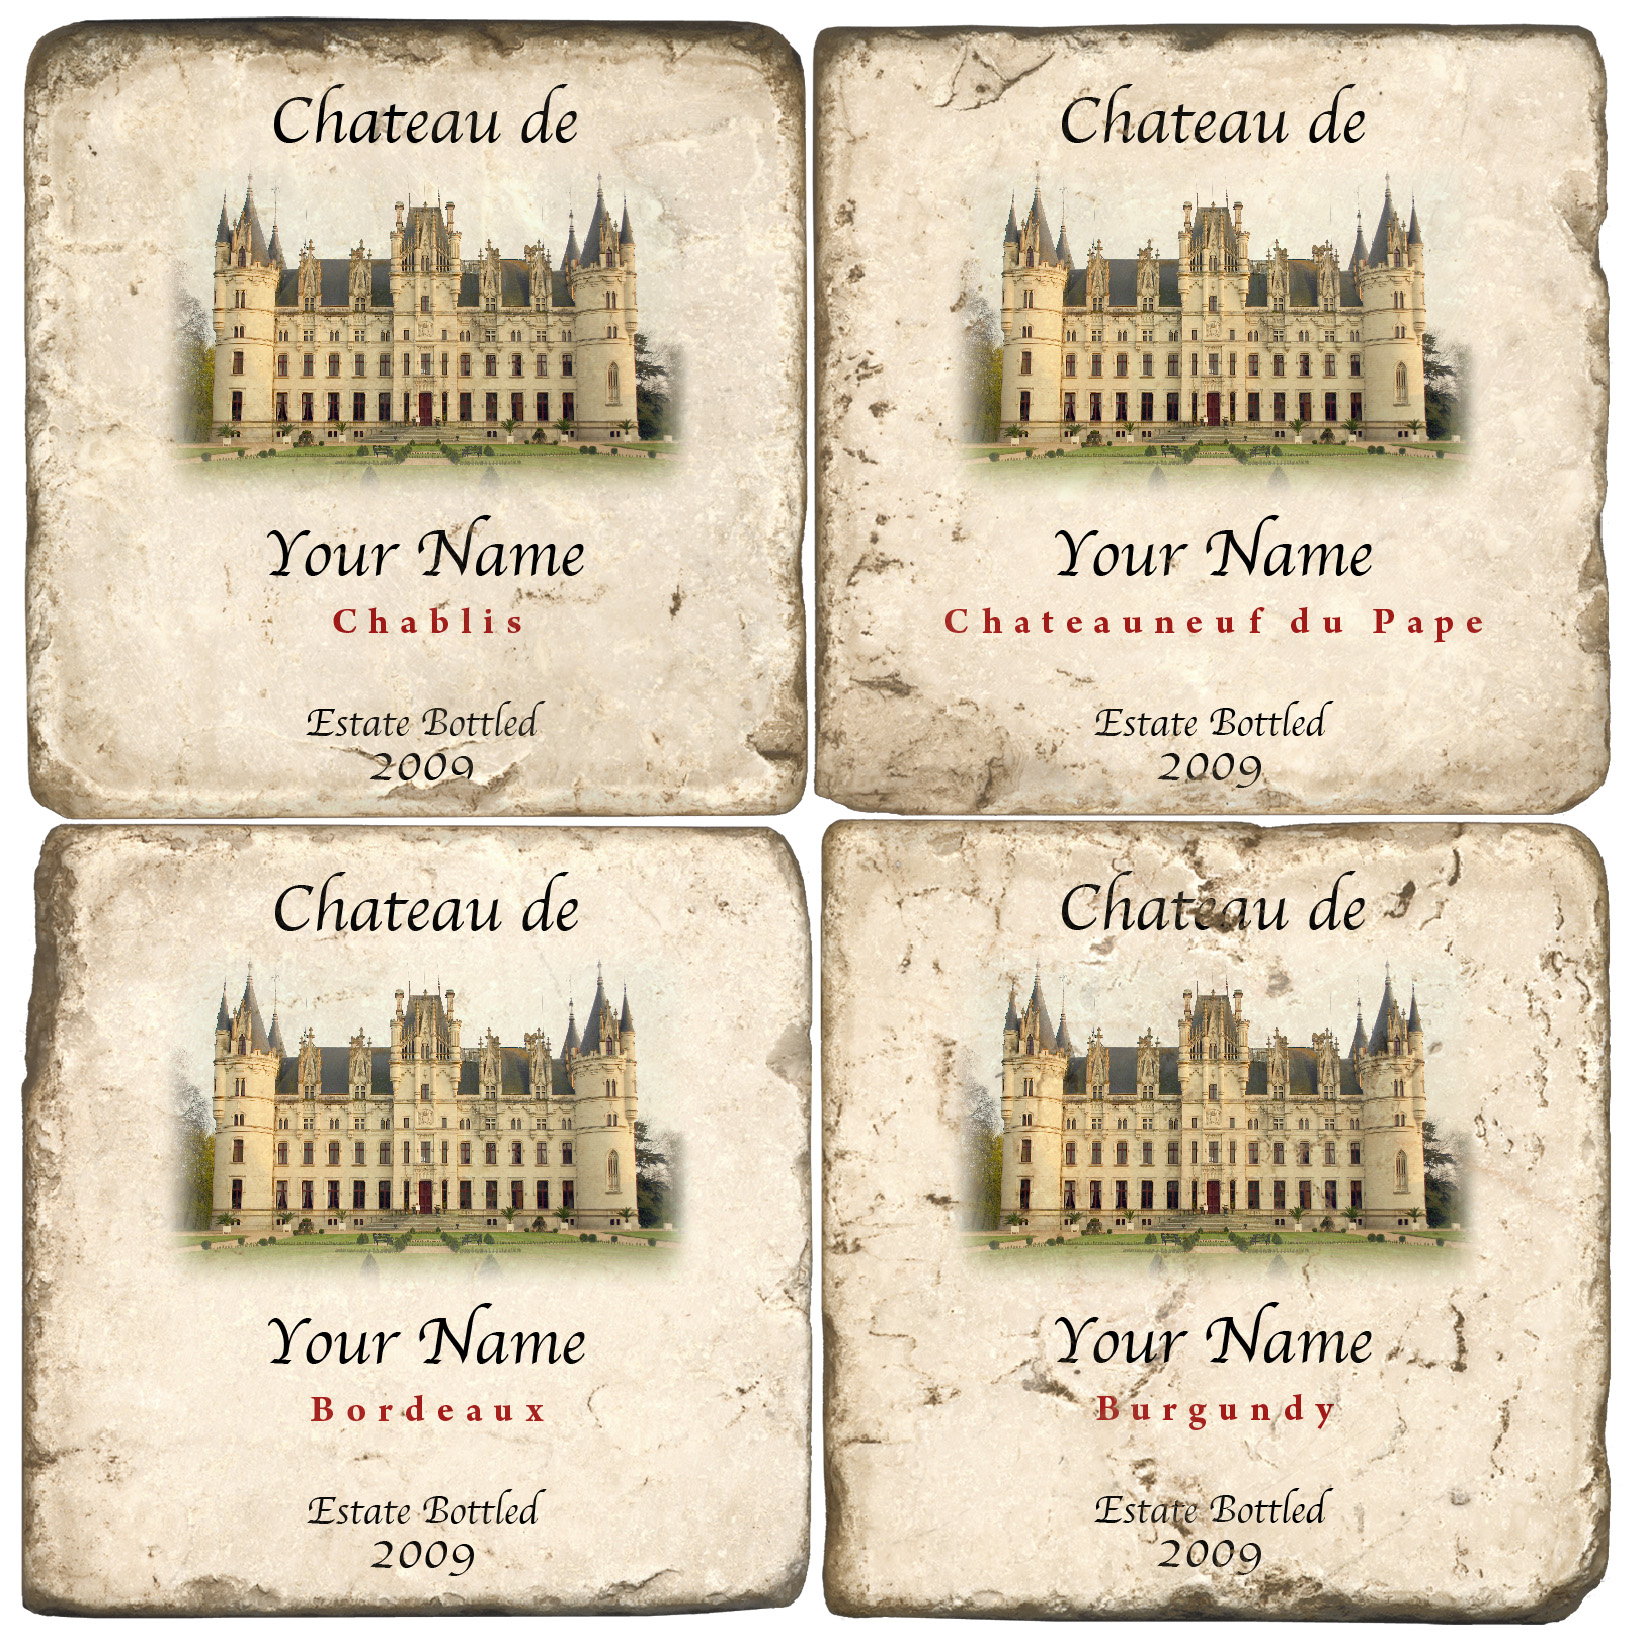 French Wine Personalized Name Drop Coasters (set of 4)